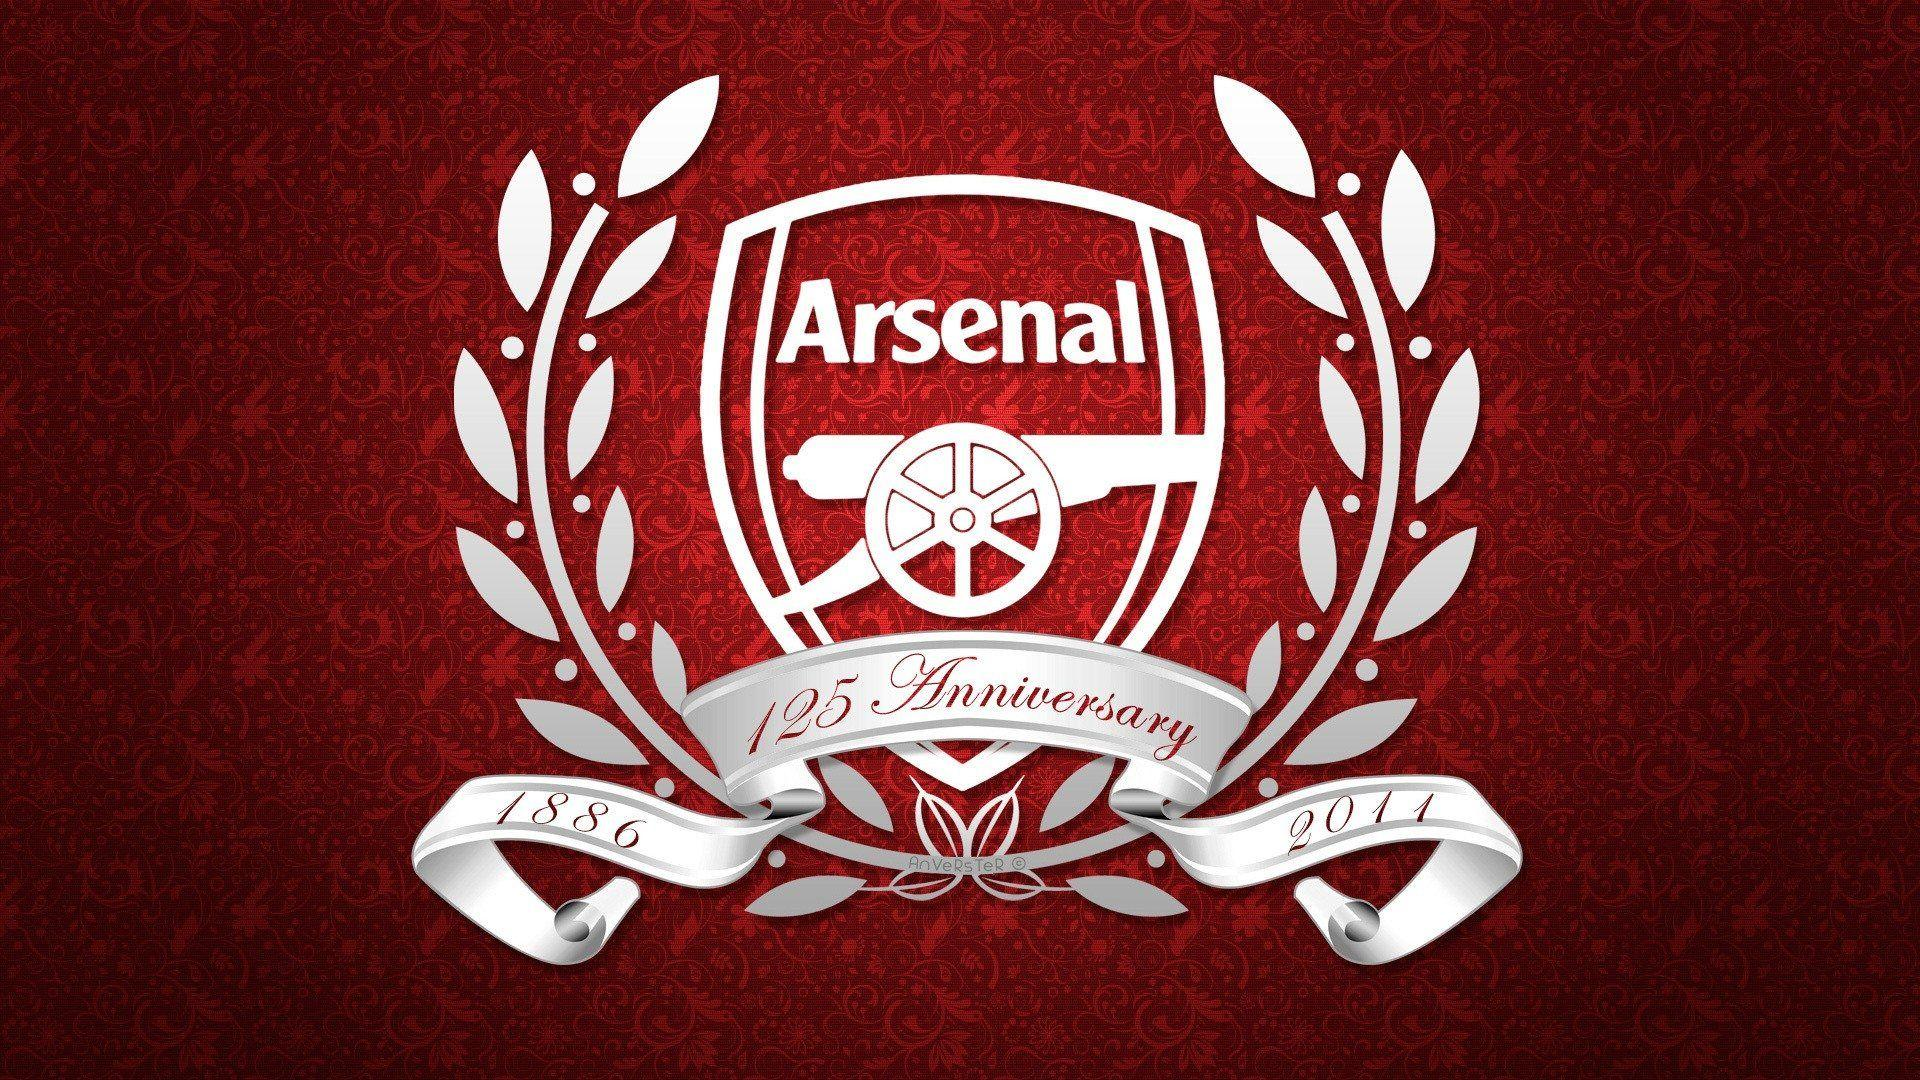 Download Arsenal FC Logo HD Wallpaper #7533 (5386) Full Size | SpotIMG